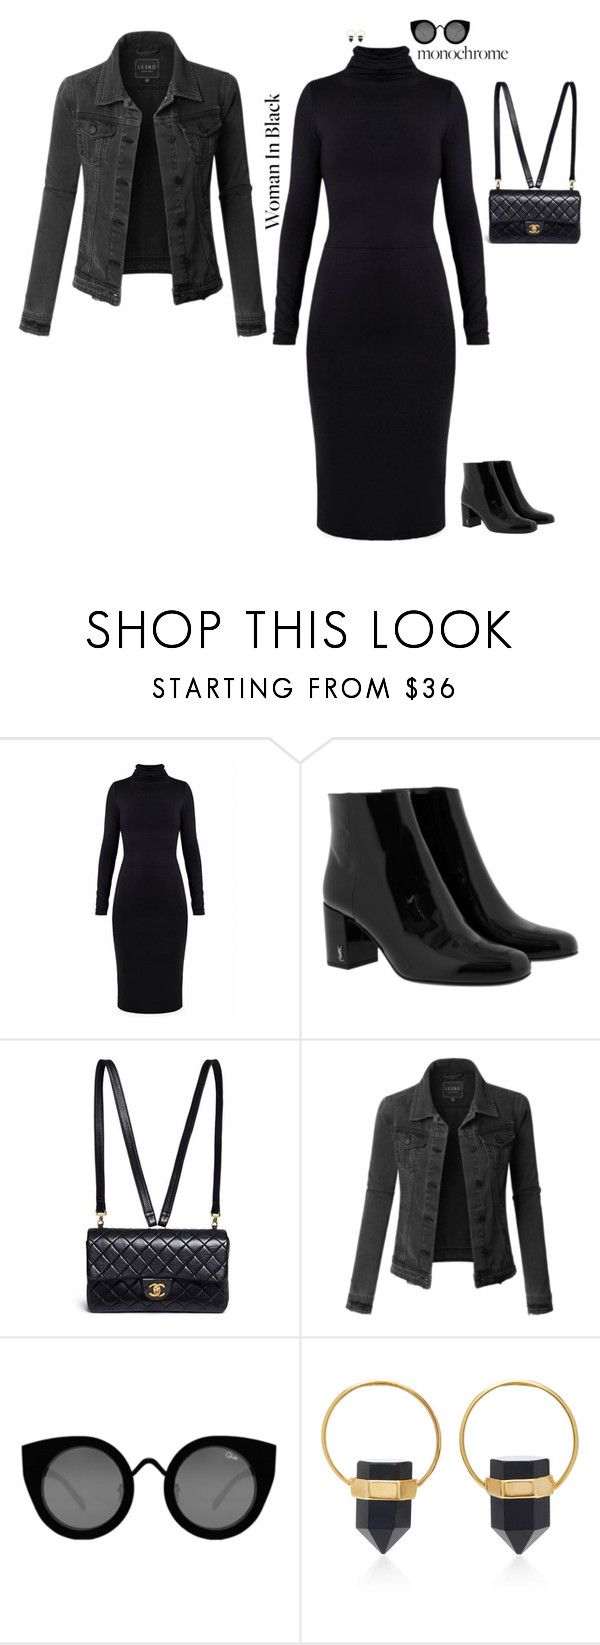 """One Color Wave: All Black Outfit"" by jenily ❤ liked on Polyvore featuring Undress, Yves Saint Laurent, Chanel, LE3NO, Quay and Isabel Marant"